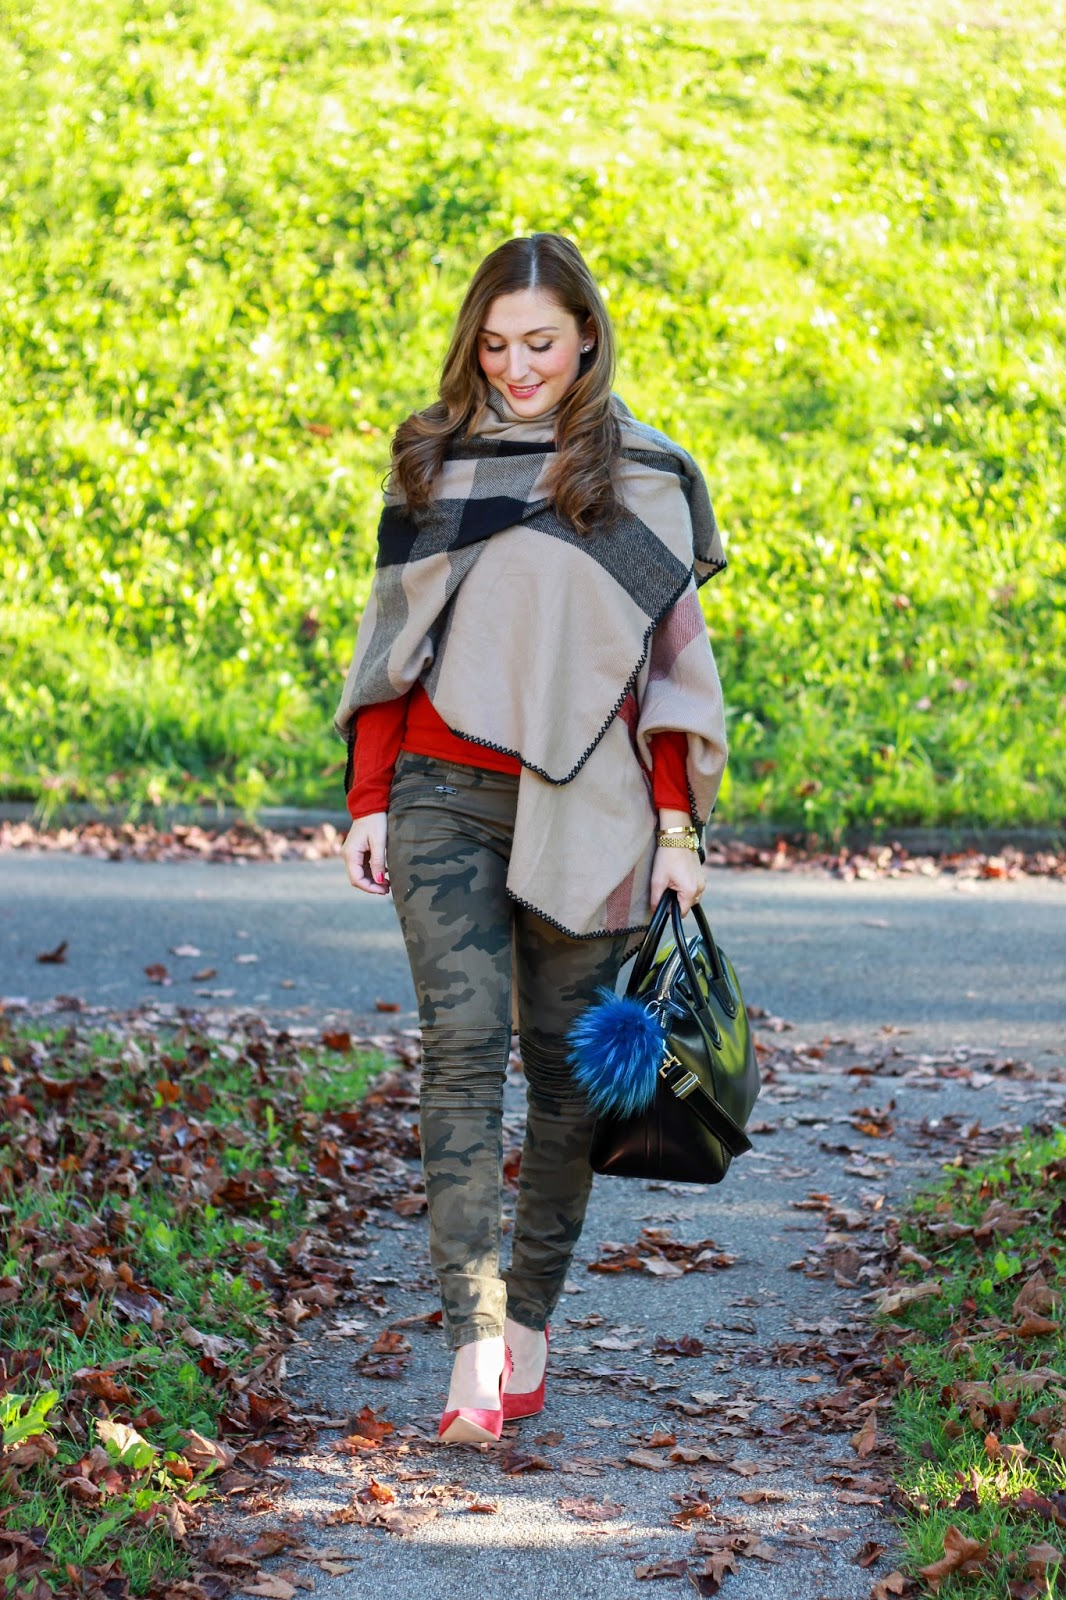 Outfitinspiration Military Hose von Zara - Givenchy Tasche - Poncho - My Colloseum - Fashionstylebyjohanna Outfitinspiration